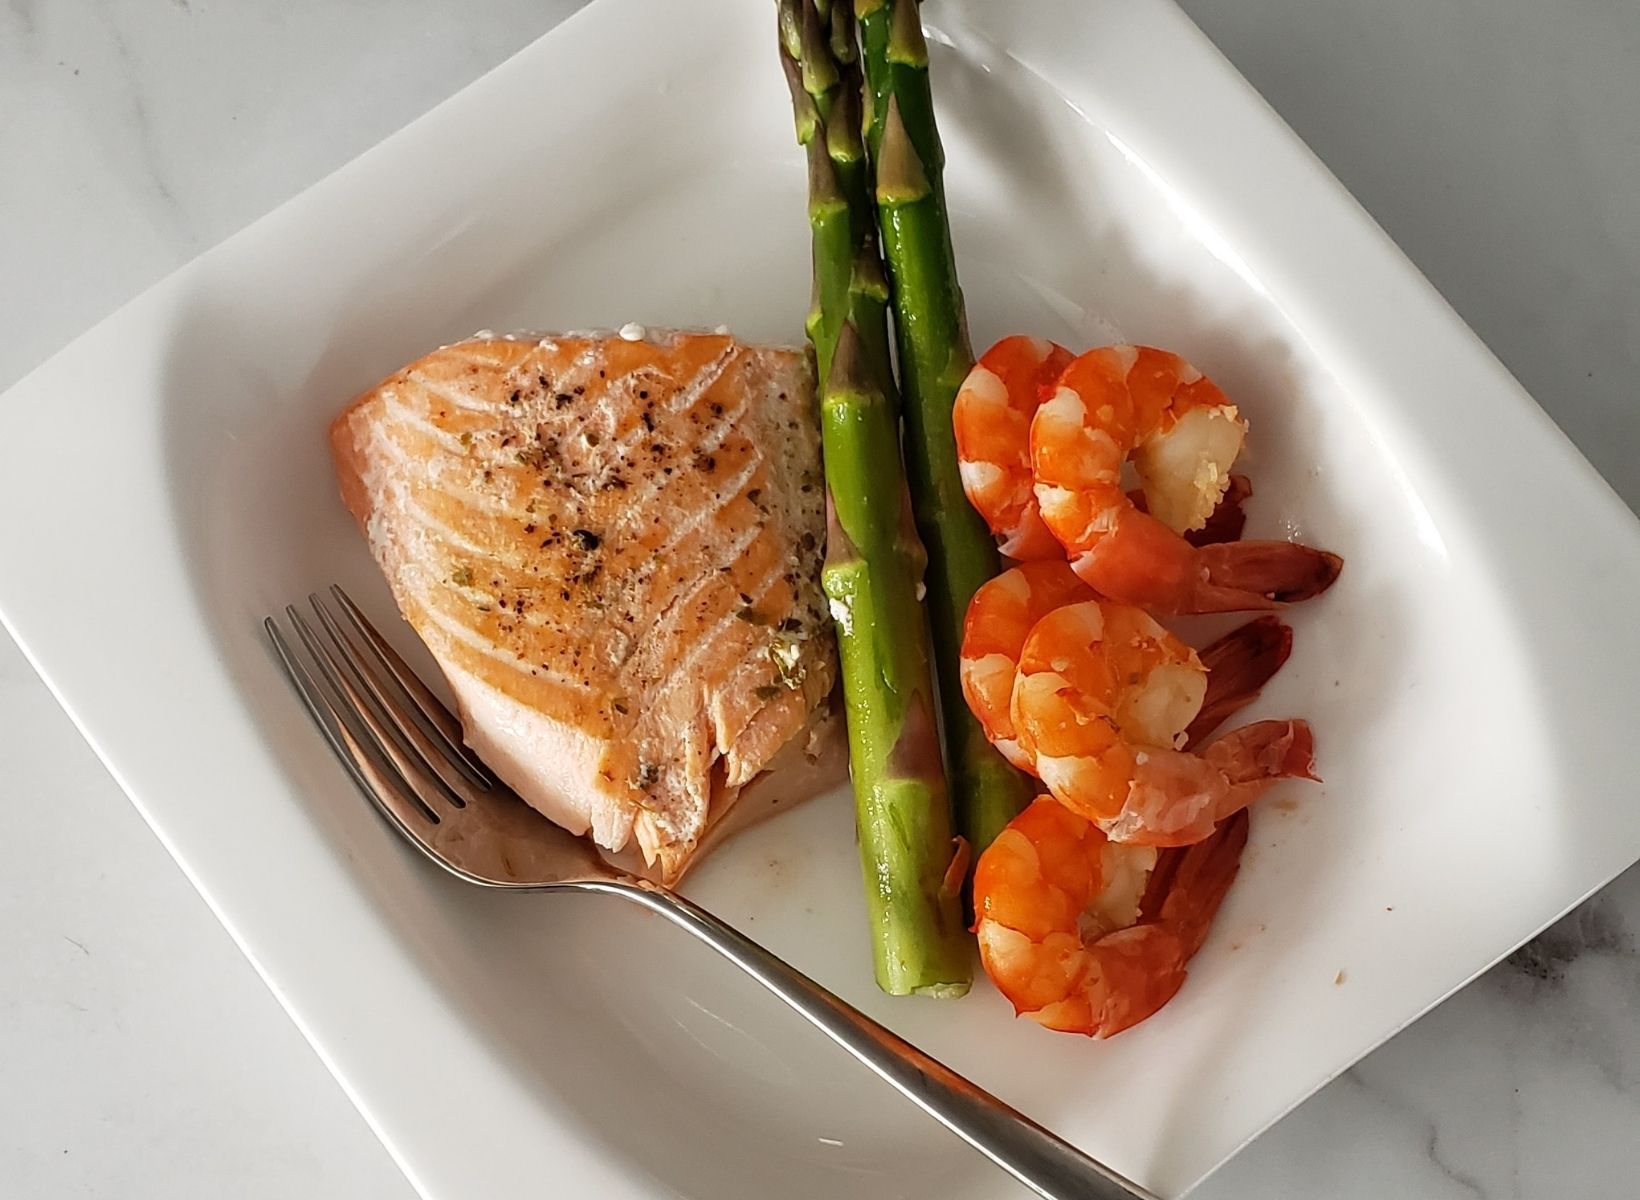 A low-glycemic and keto meal of fish, asparagus, and shrimp